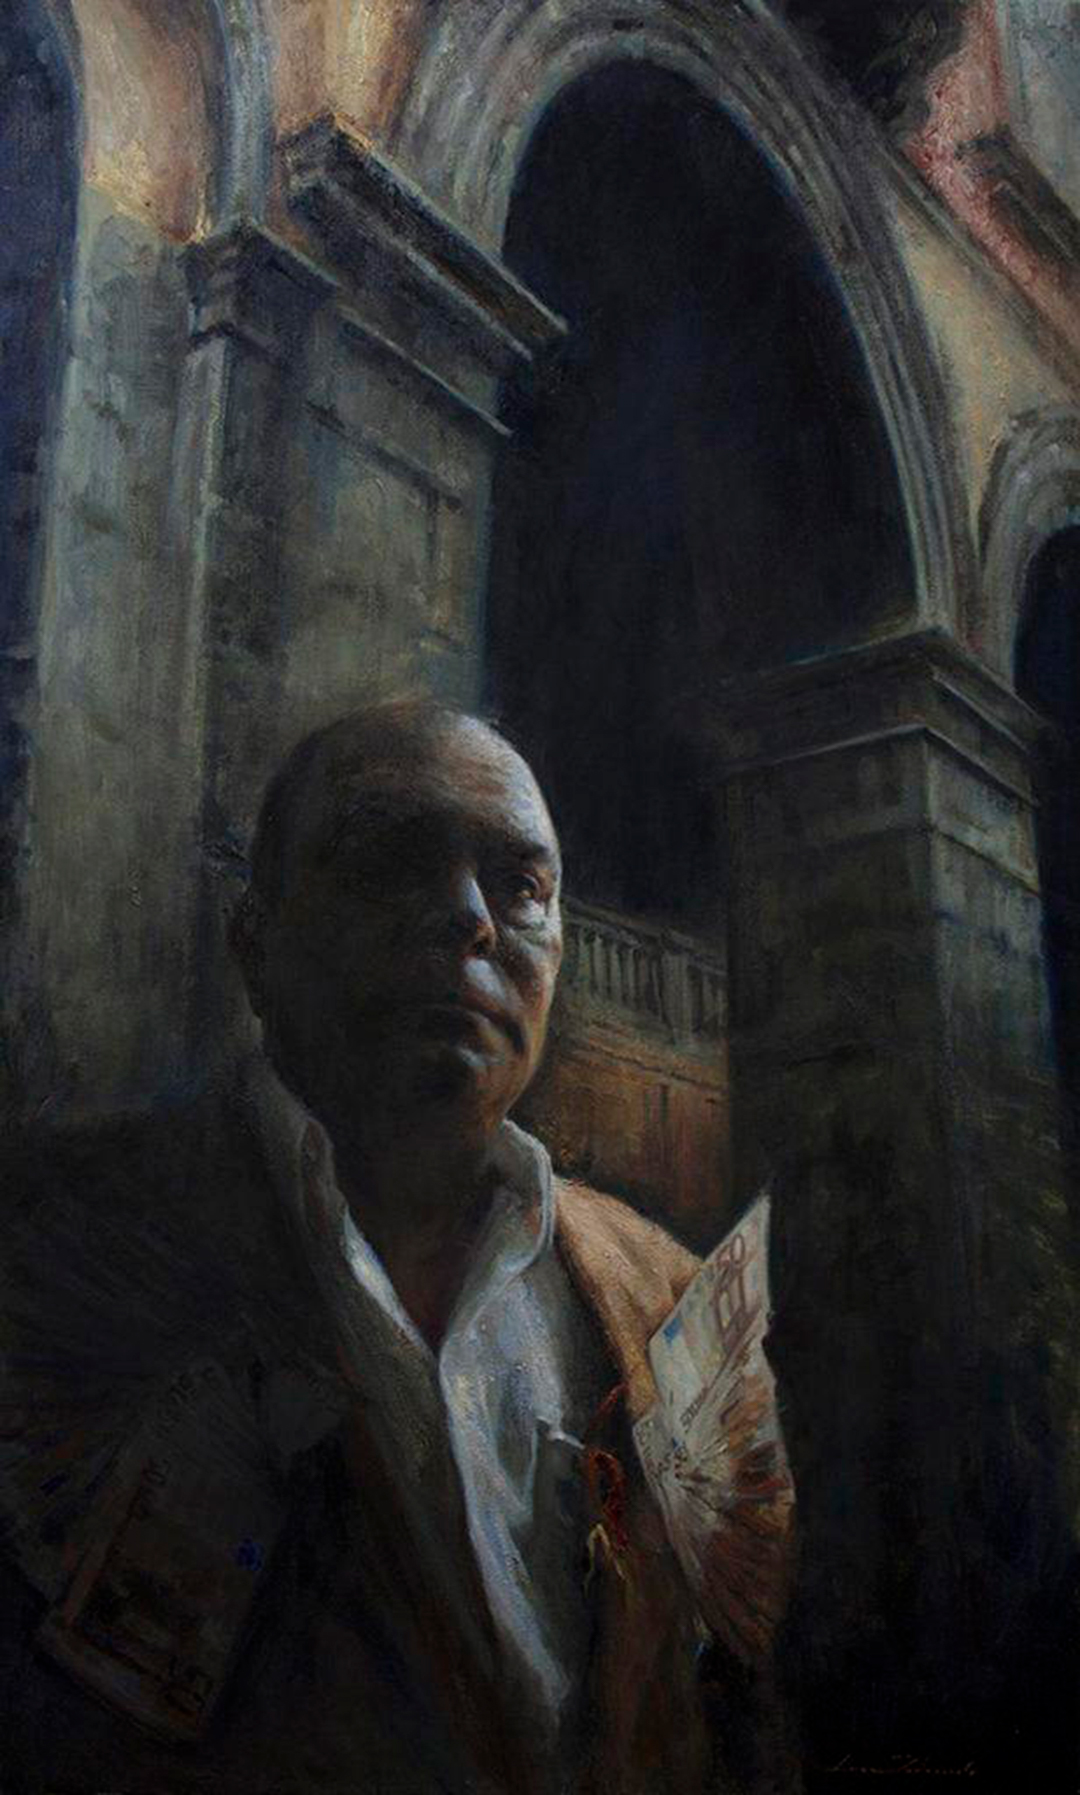 SMF.79.46.70, Luca Indraccolo Oil on Canvas, 85 x 114 cm